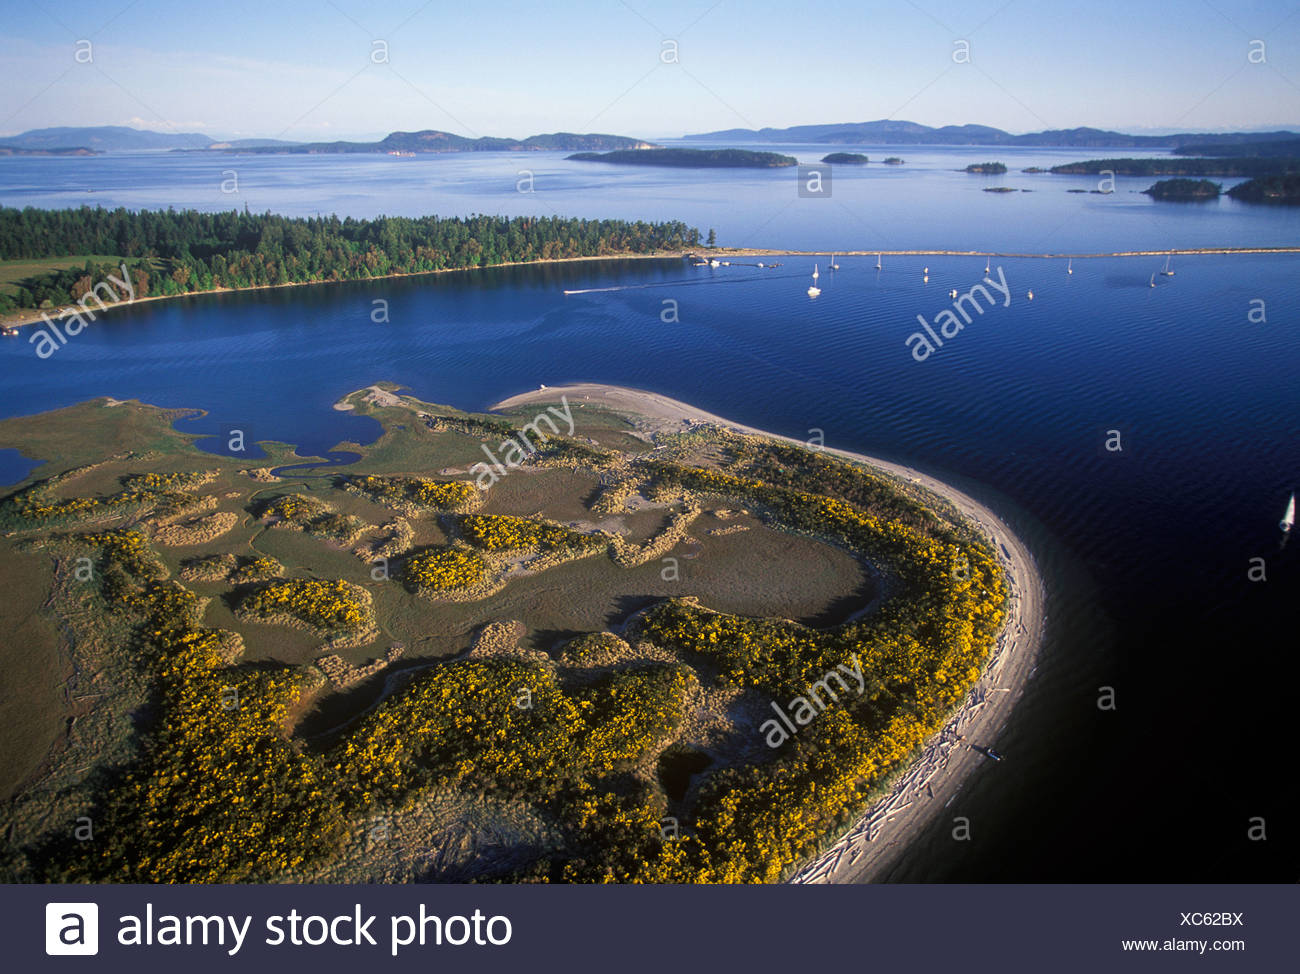 Aerial of Sidney Spit, Vancouver Island, British Columbia, Canada. - Stock Image